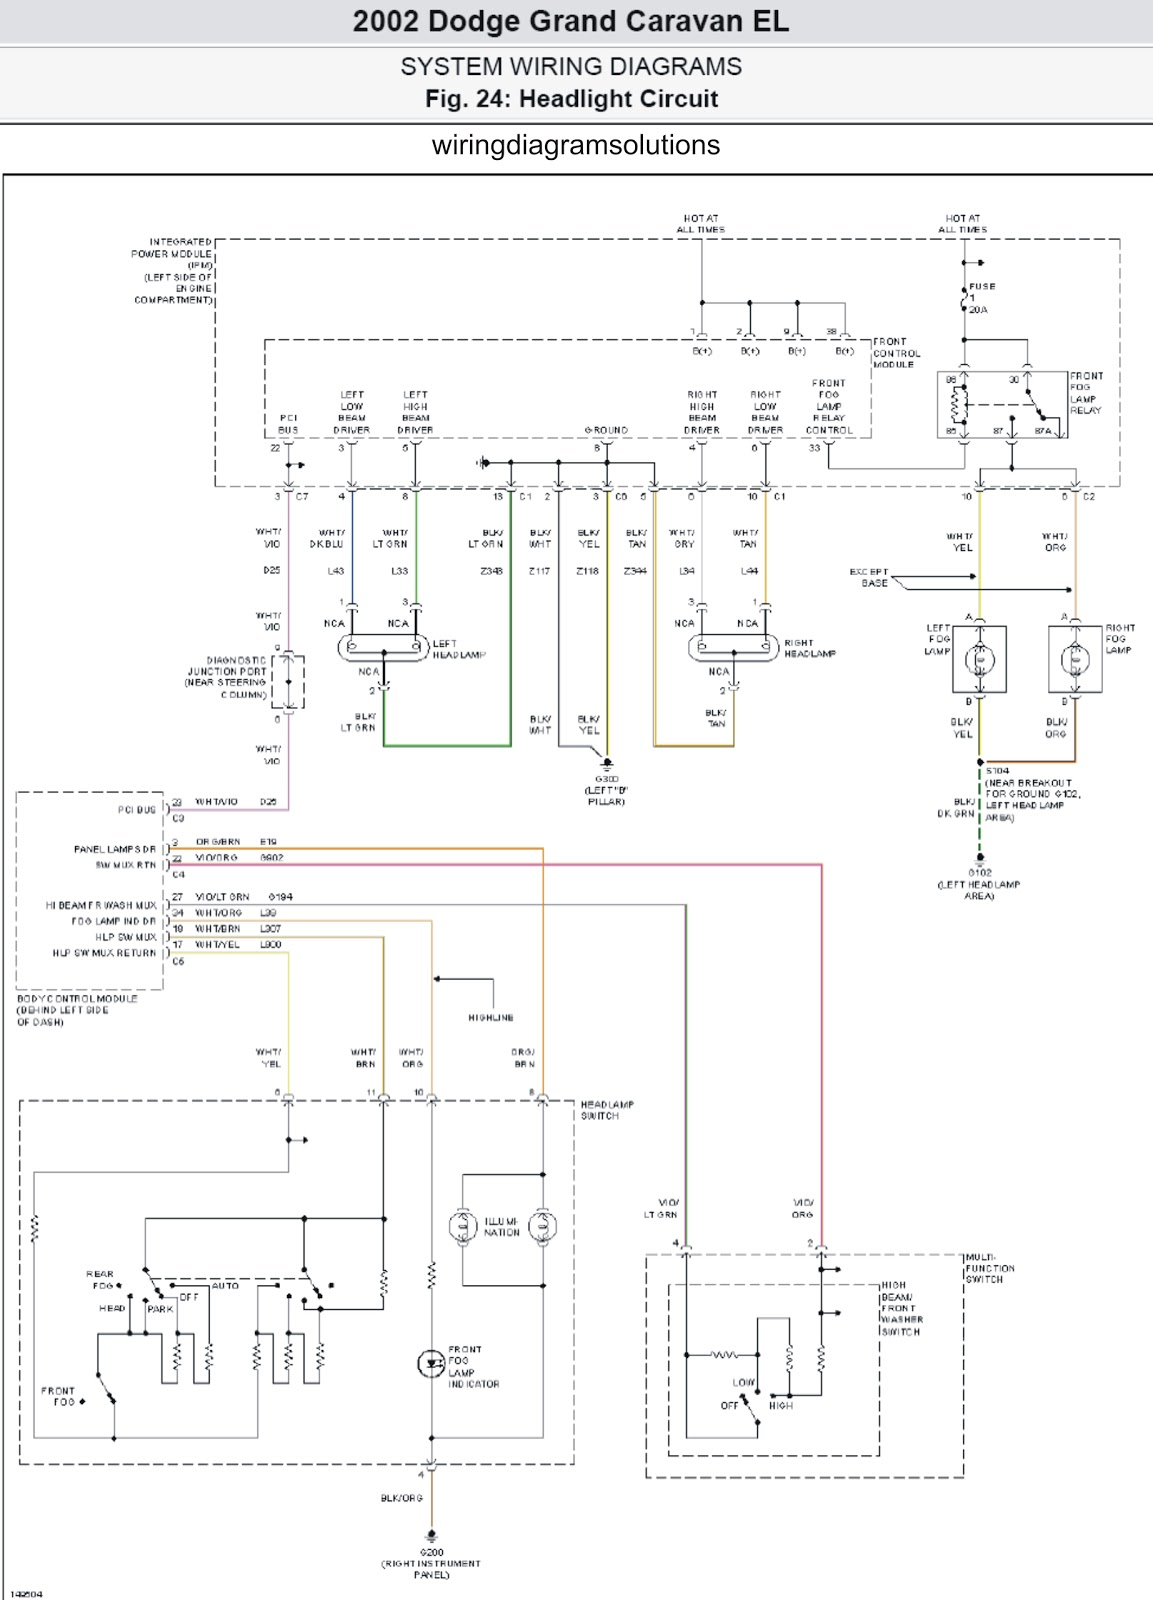 2001 Dodge Ram 1500 Stereo Wiring Diagram